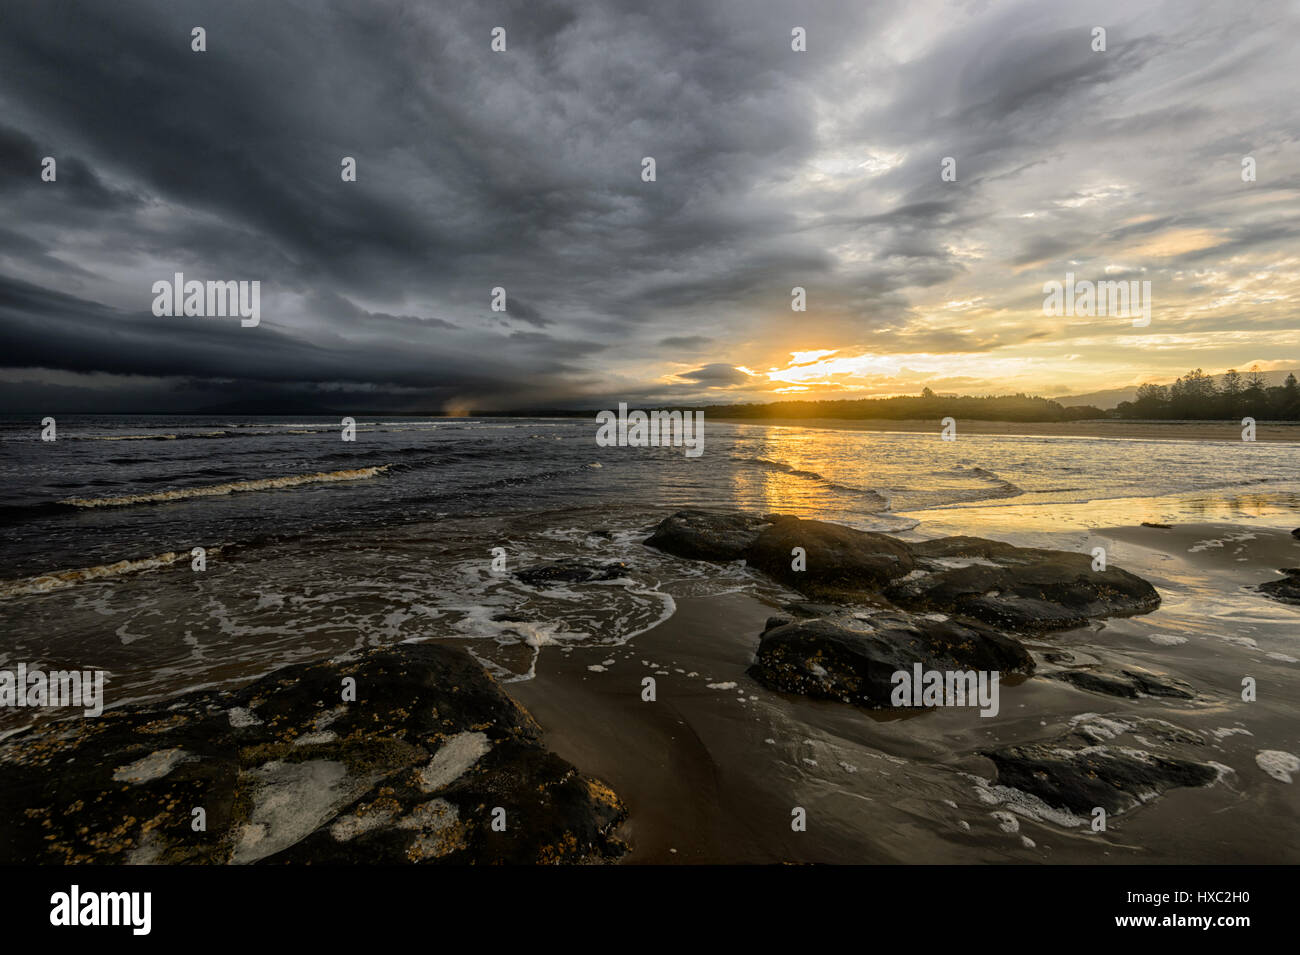 Dramatic sunset with black threatening clouds over Seven Mile Beach, Gerroa, Illawarra Coast, New South Wales, NSW, - Stock Image